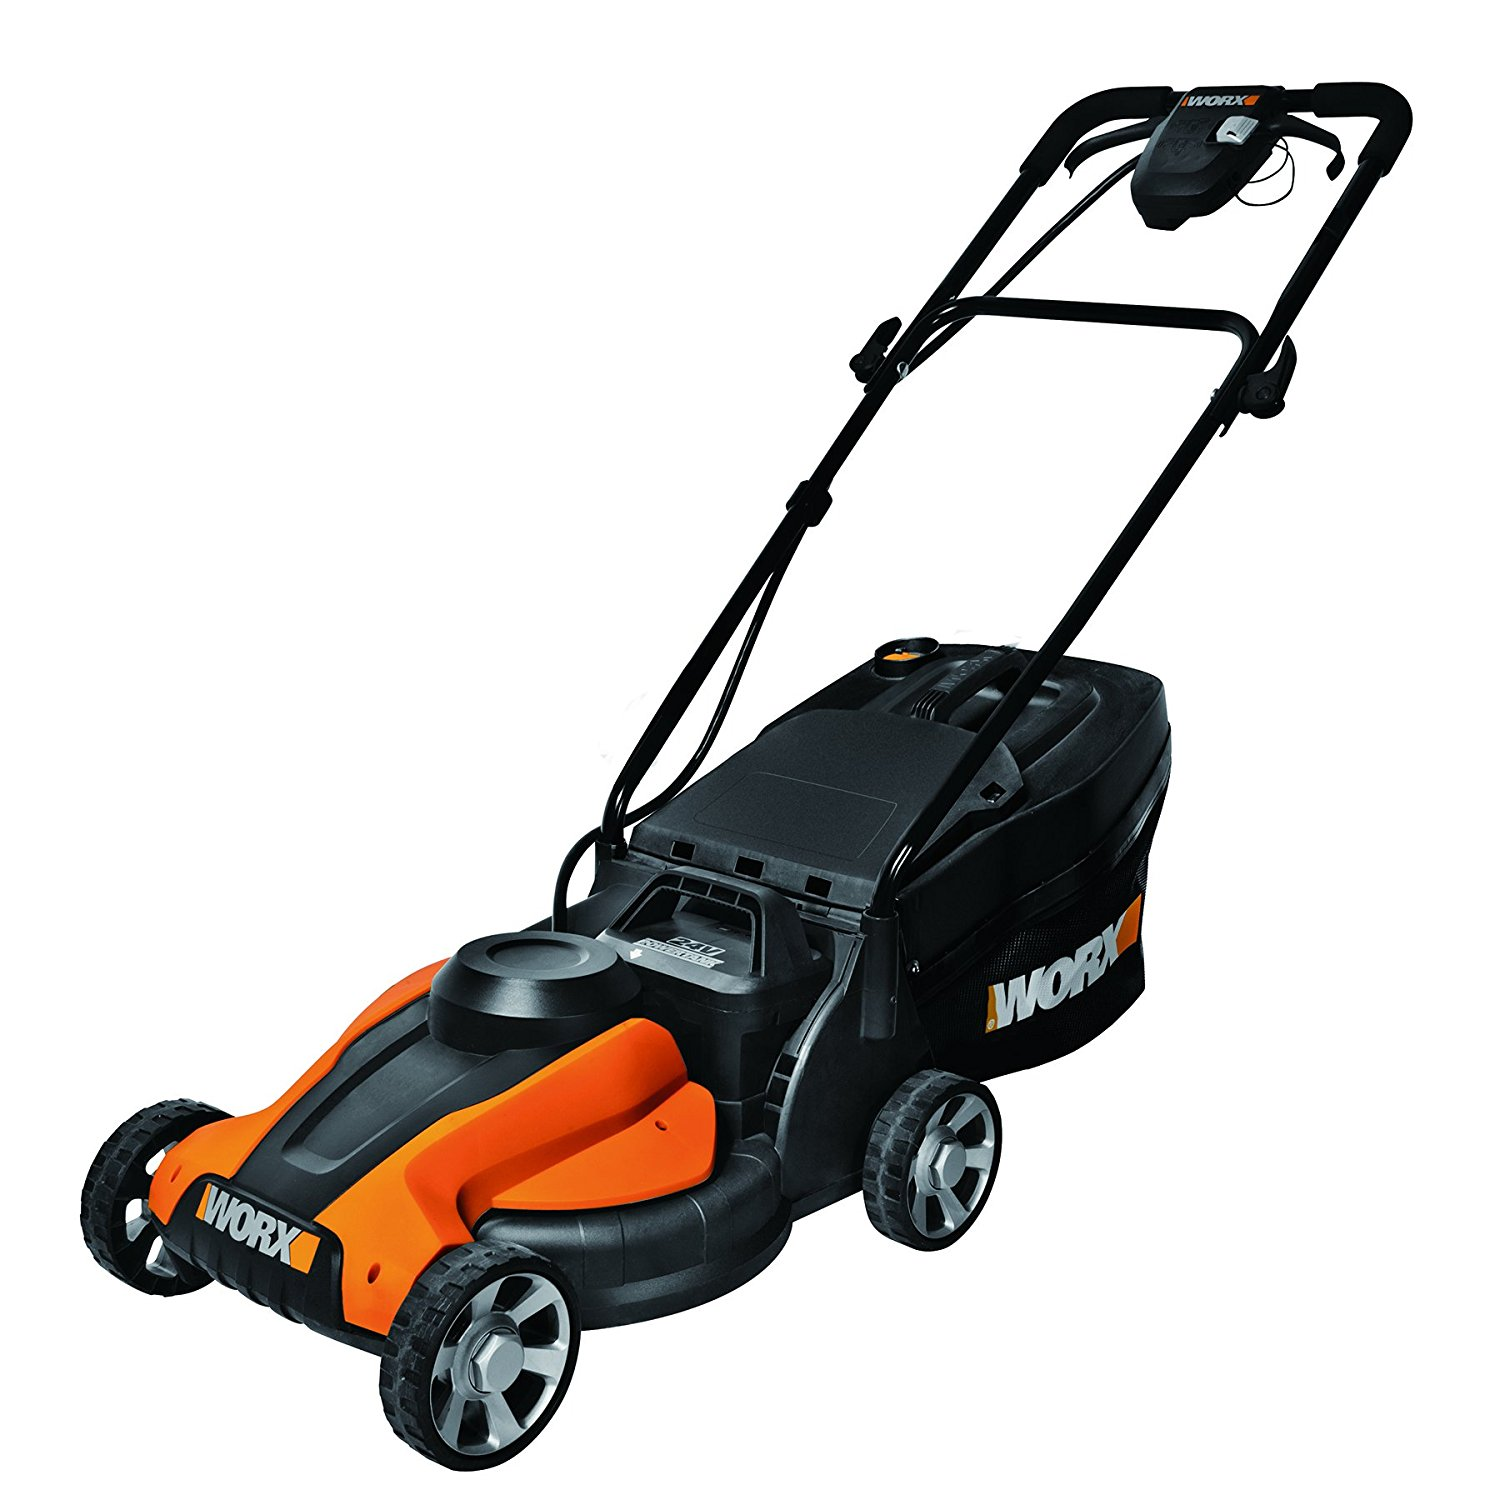 WORX Lil'Mo 14-Inch 24-Volt Cordless Lawn Mower with Easy-Start Feature